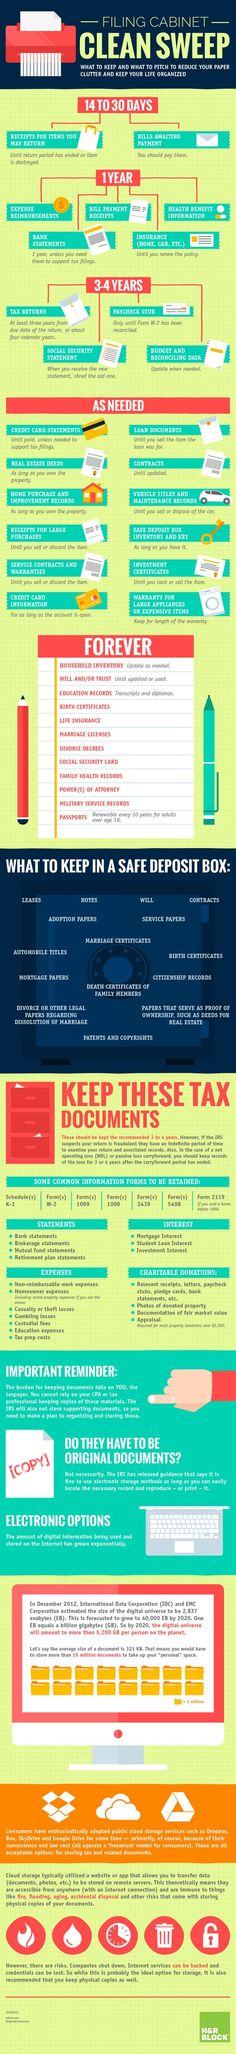 Looking to do a little clean up? This guide can help you sort through the stack of documents, receipts and other papers that have piled up. Learn what to keep and what to trash.: